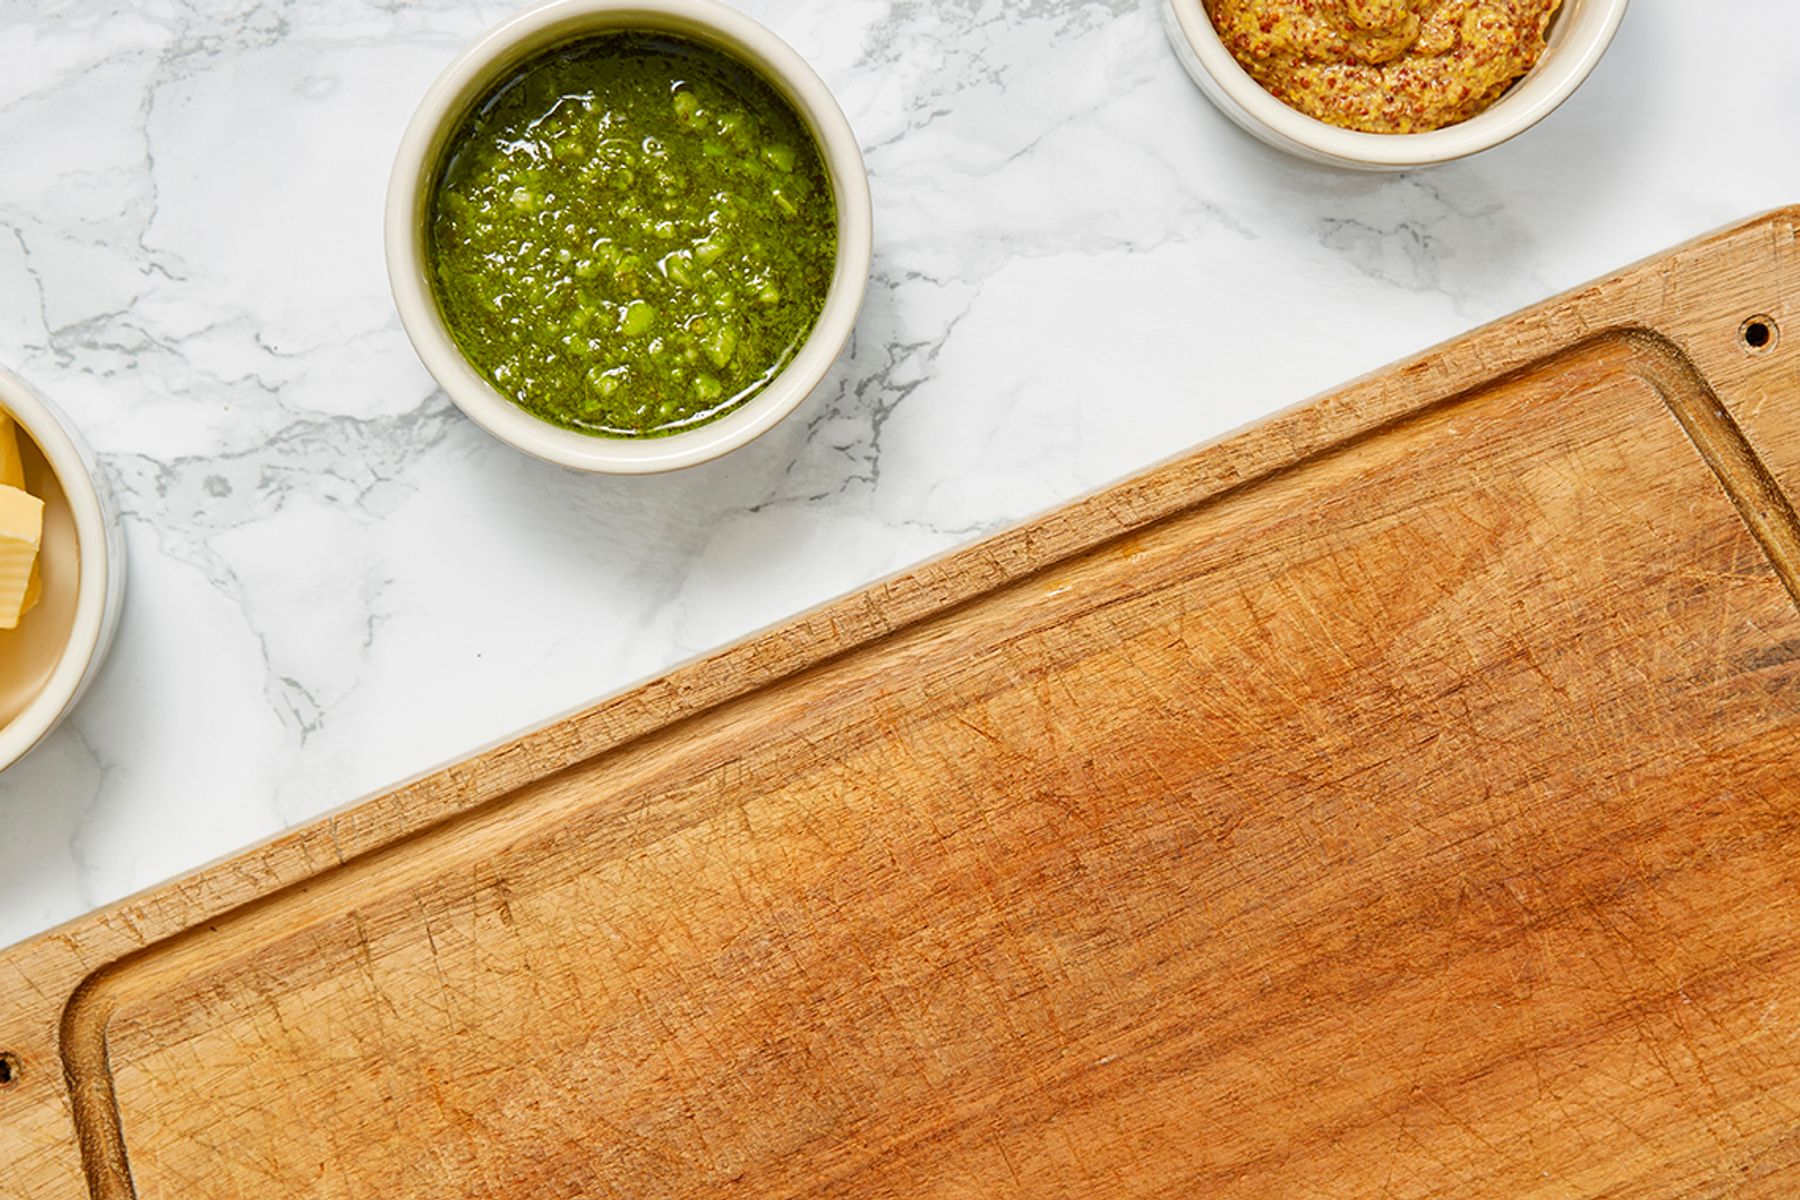 wooden chopping board next to three little bowls on a marble surface